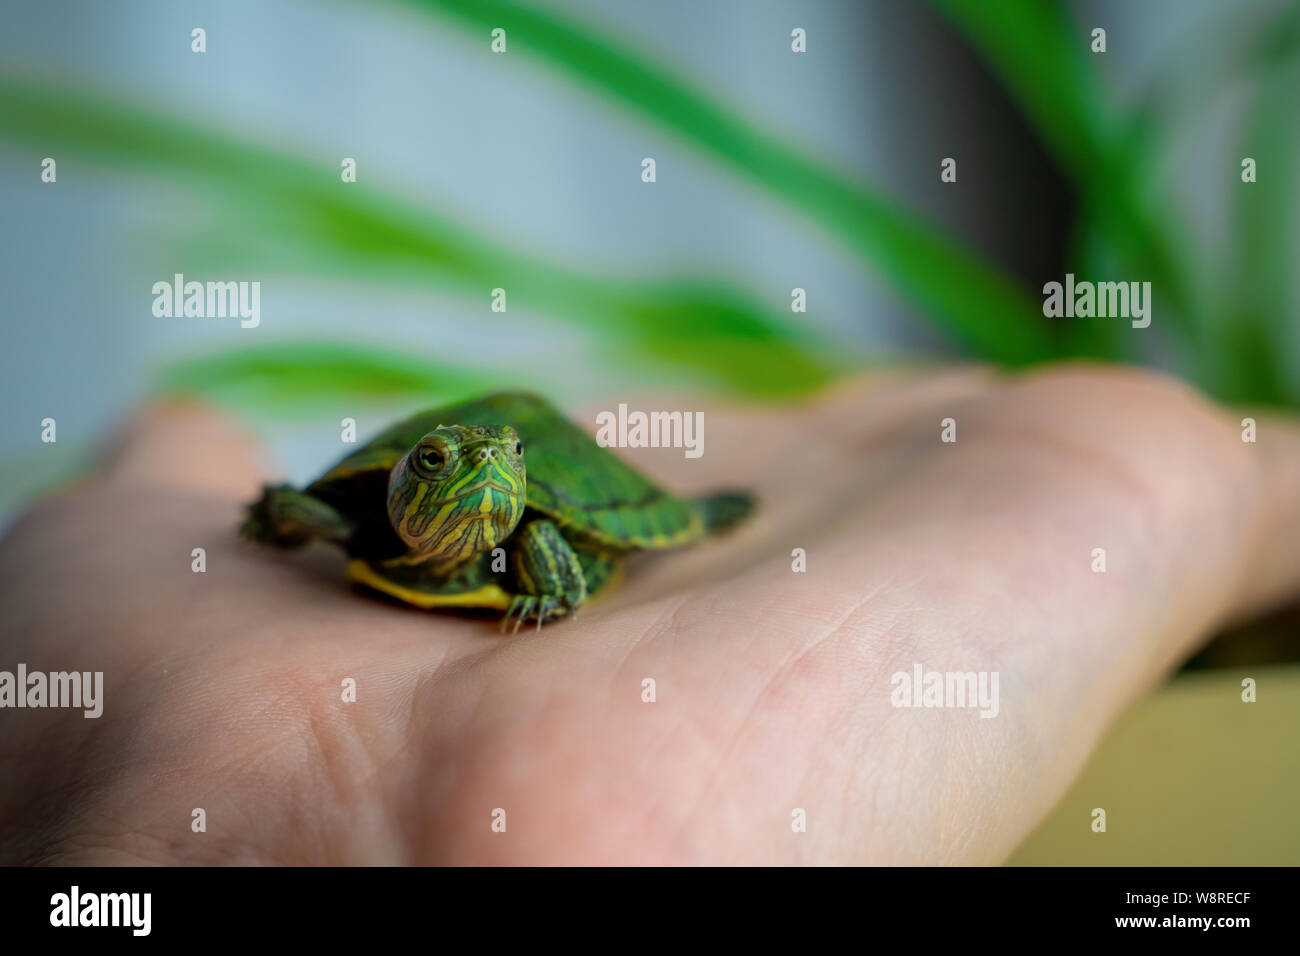 The turtle is crawling on the floor at home. Pet turtle in the room close up view. The slow animal movement. Stock Photo